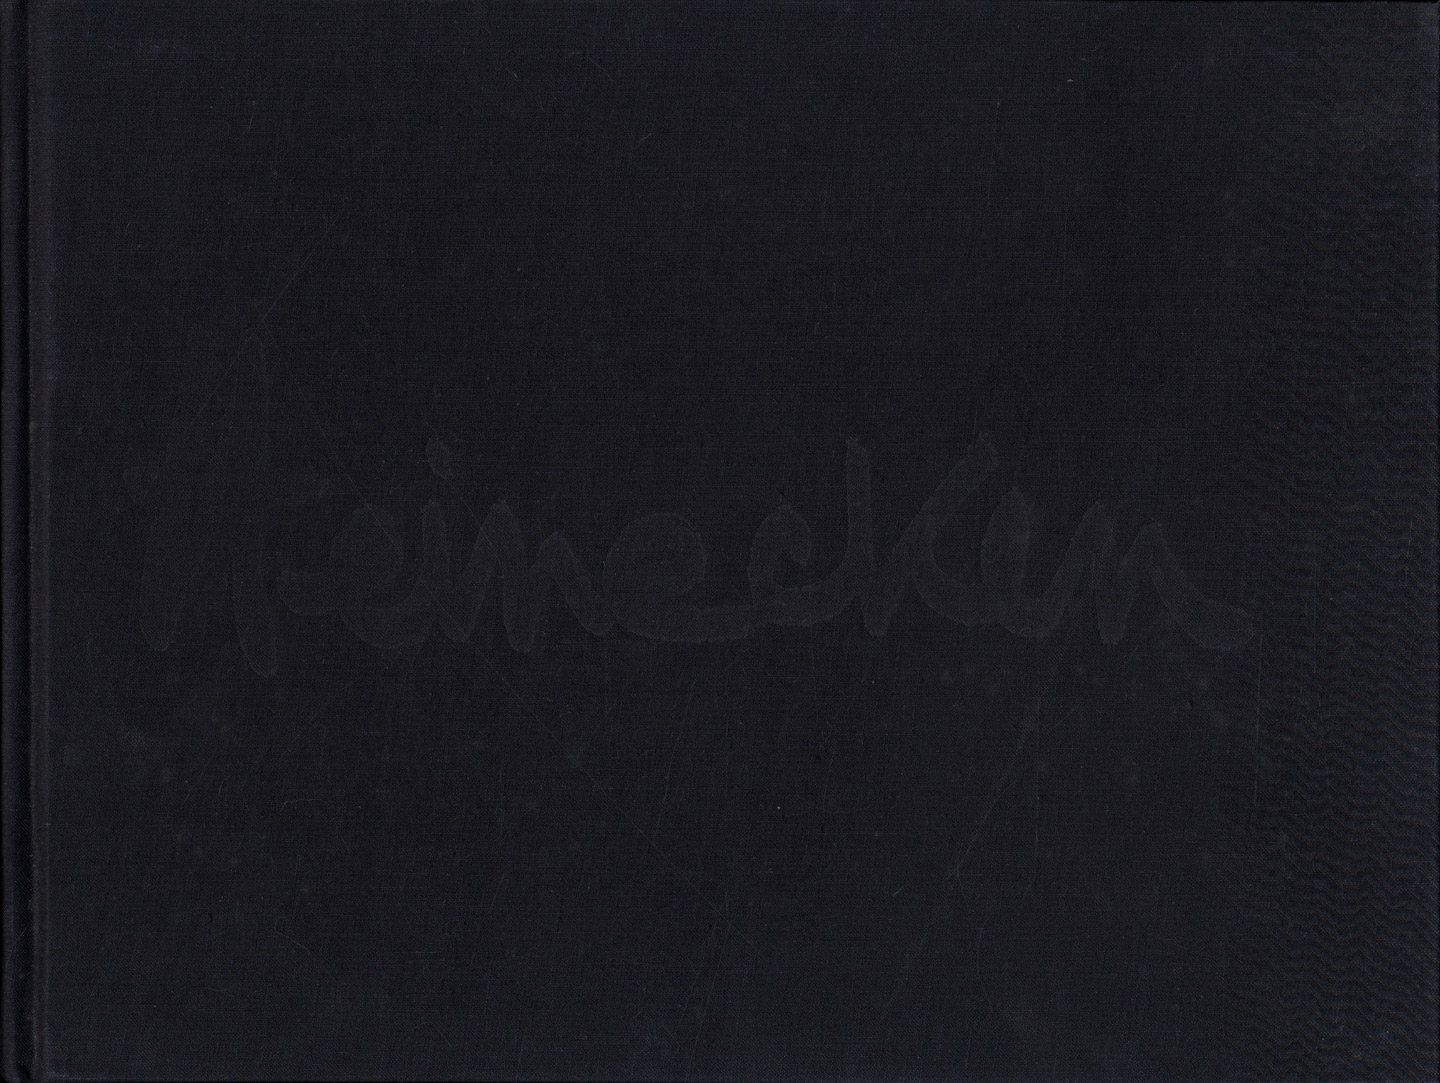 Robert Heinecken (The Friends of Photography, 1980), Limited Edition [SIGNED]